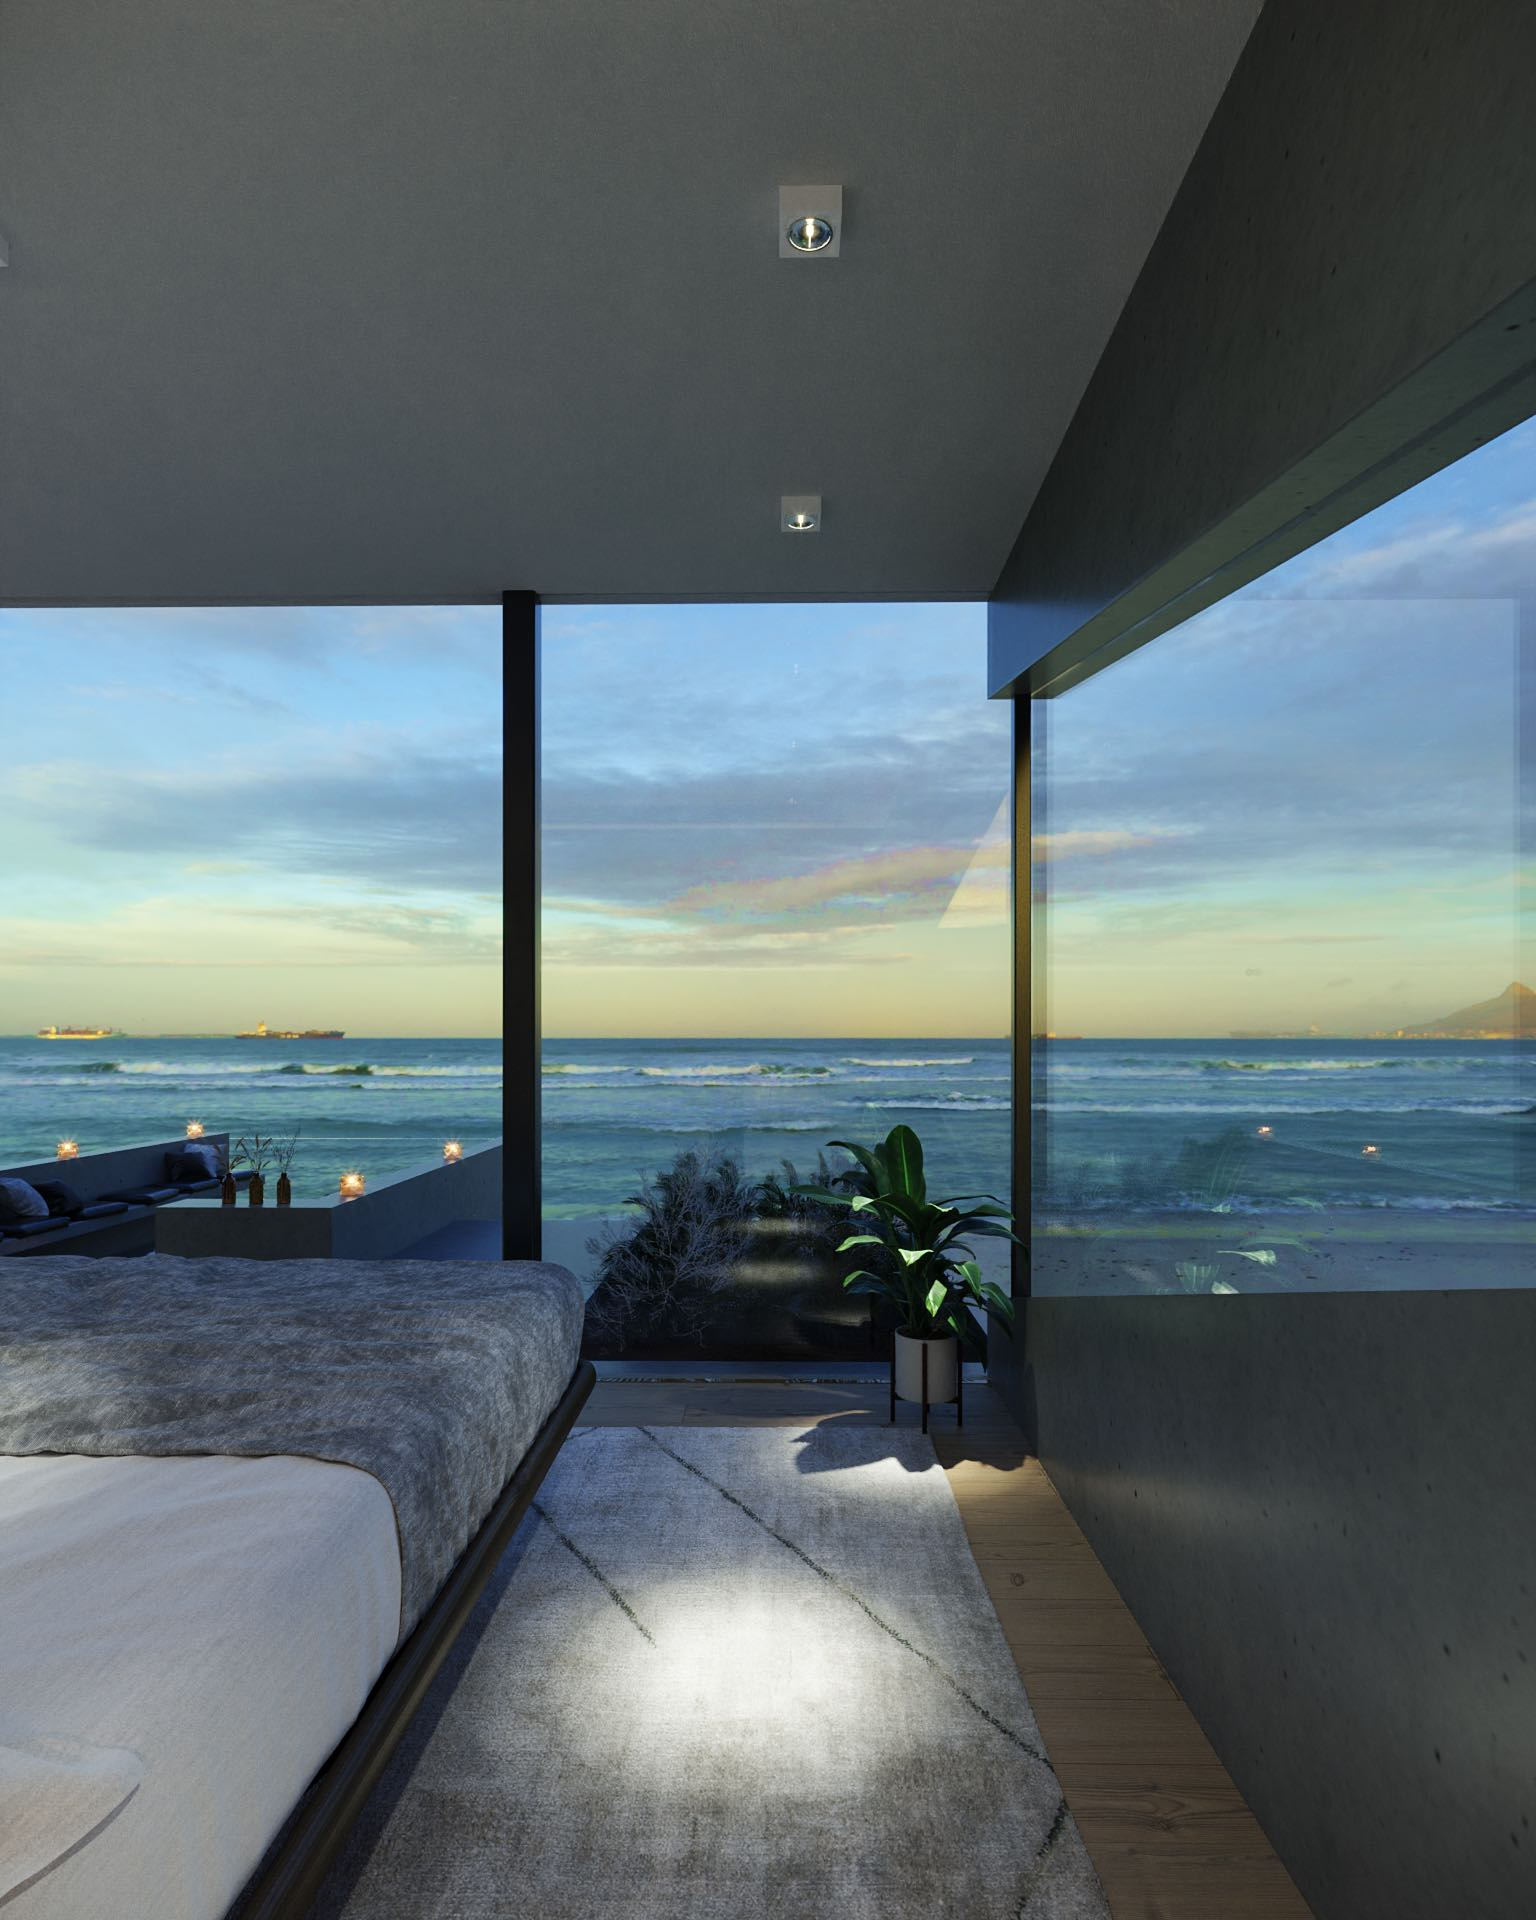 Ibiza House by Thomas Cravero / Tc.arqui|Visualization